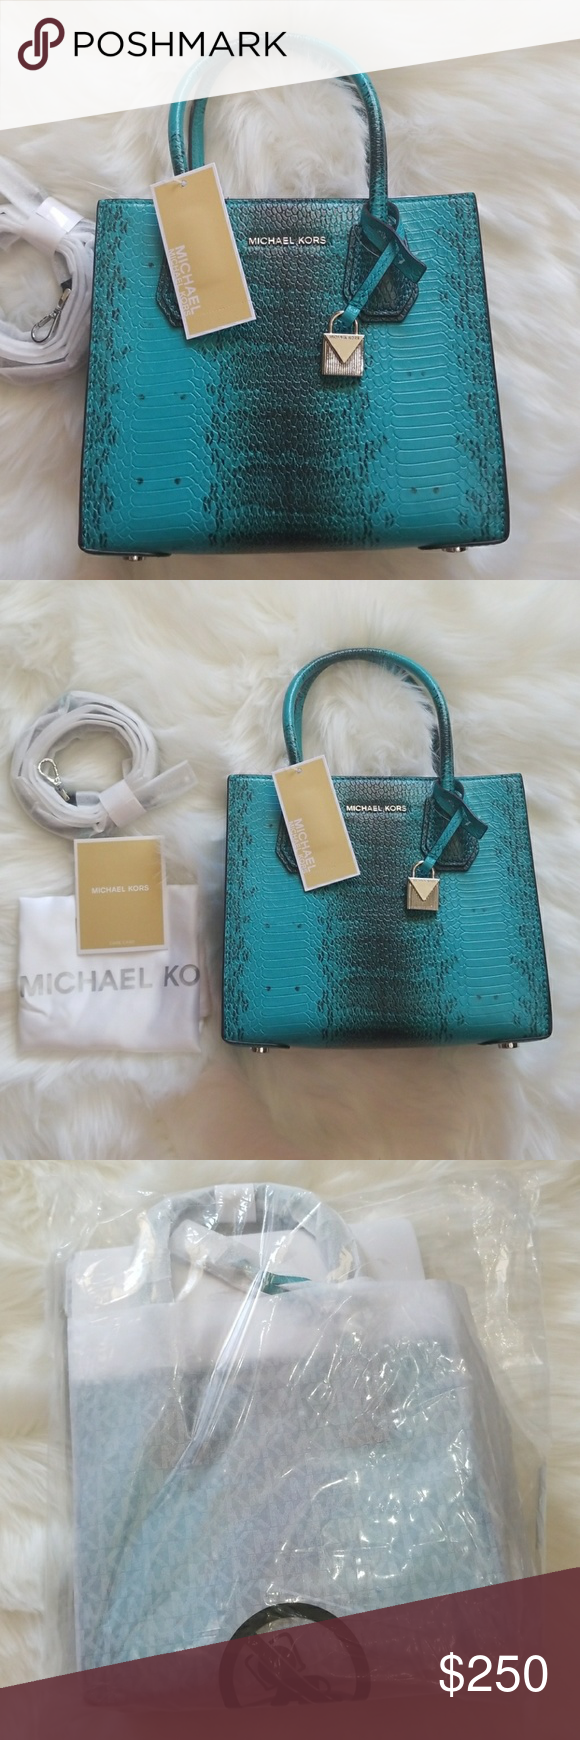 c97a6dca1441 NWT Michael Kors Tile Blue Teal Mercer Crossbody AUTHENTIC Medium